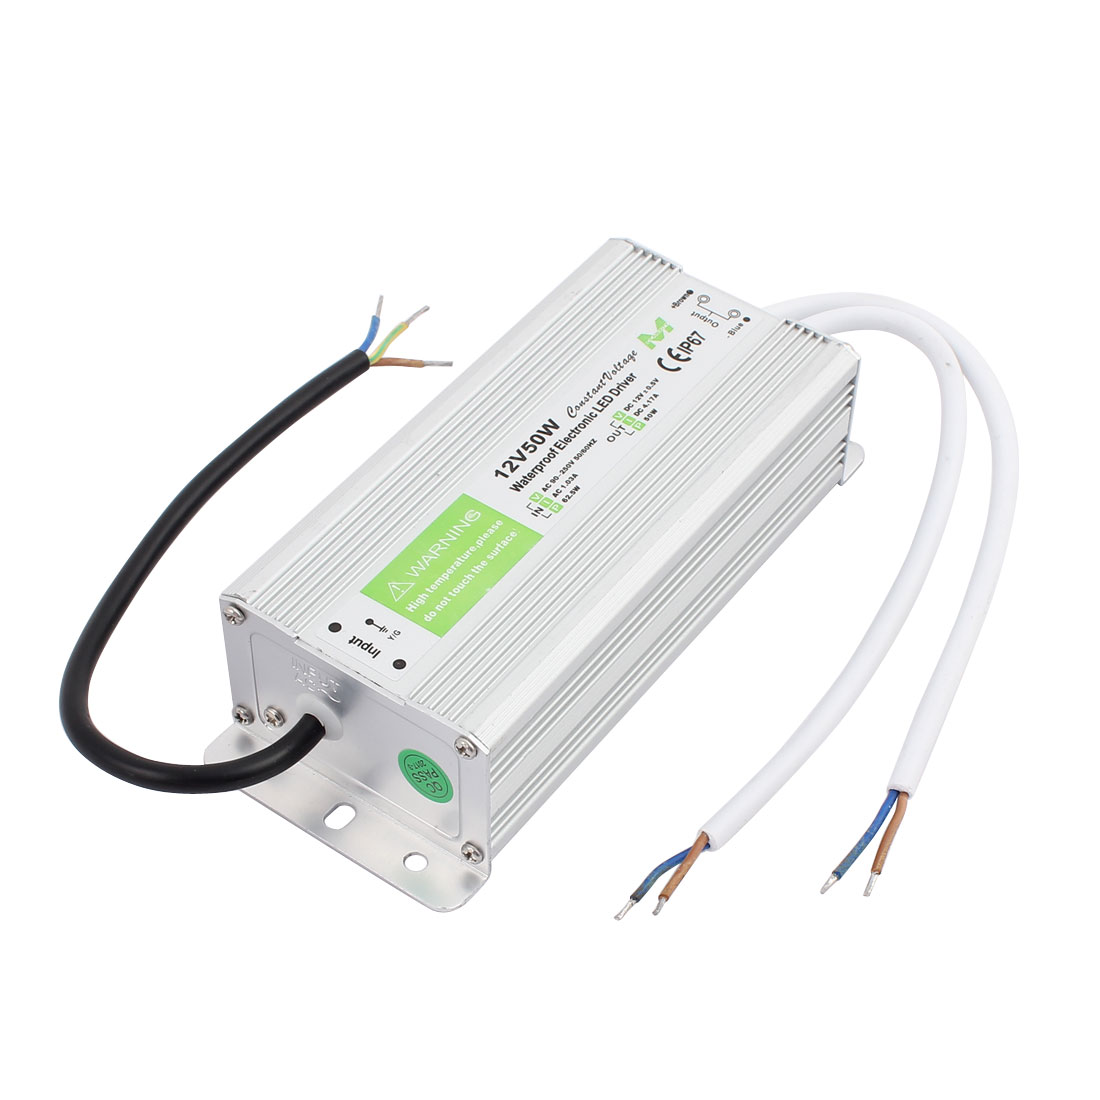 AC90~250V to DC12V 50 Watt Transformer IP67 Waterproof LED Driver Power Supply